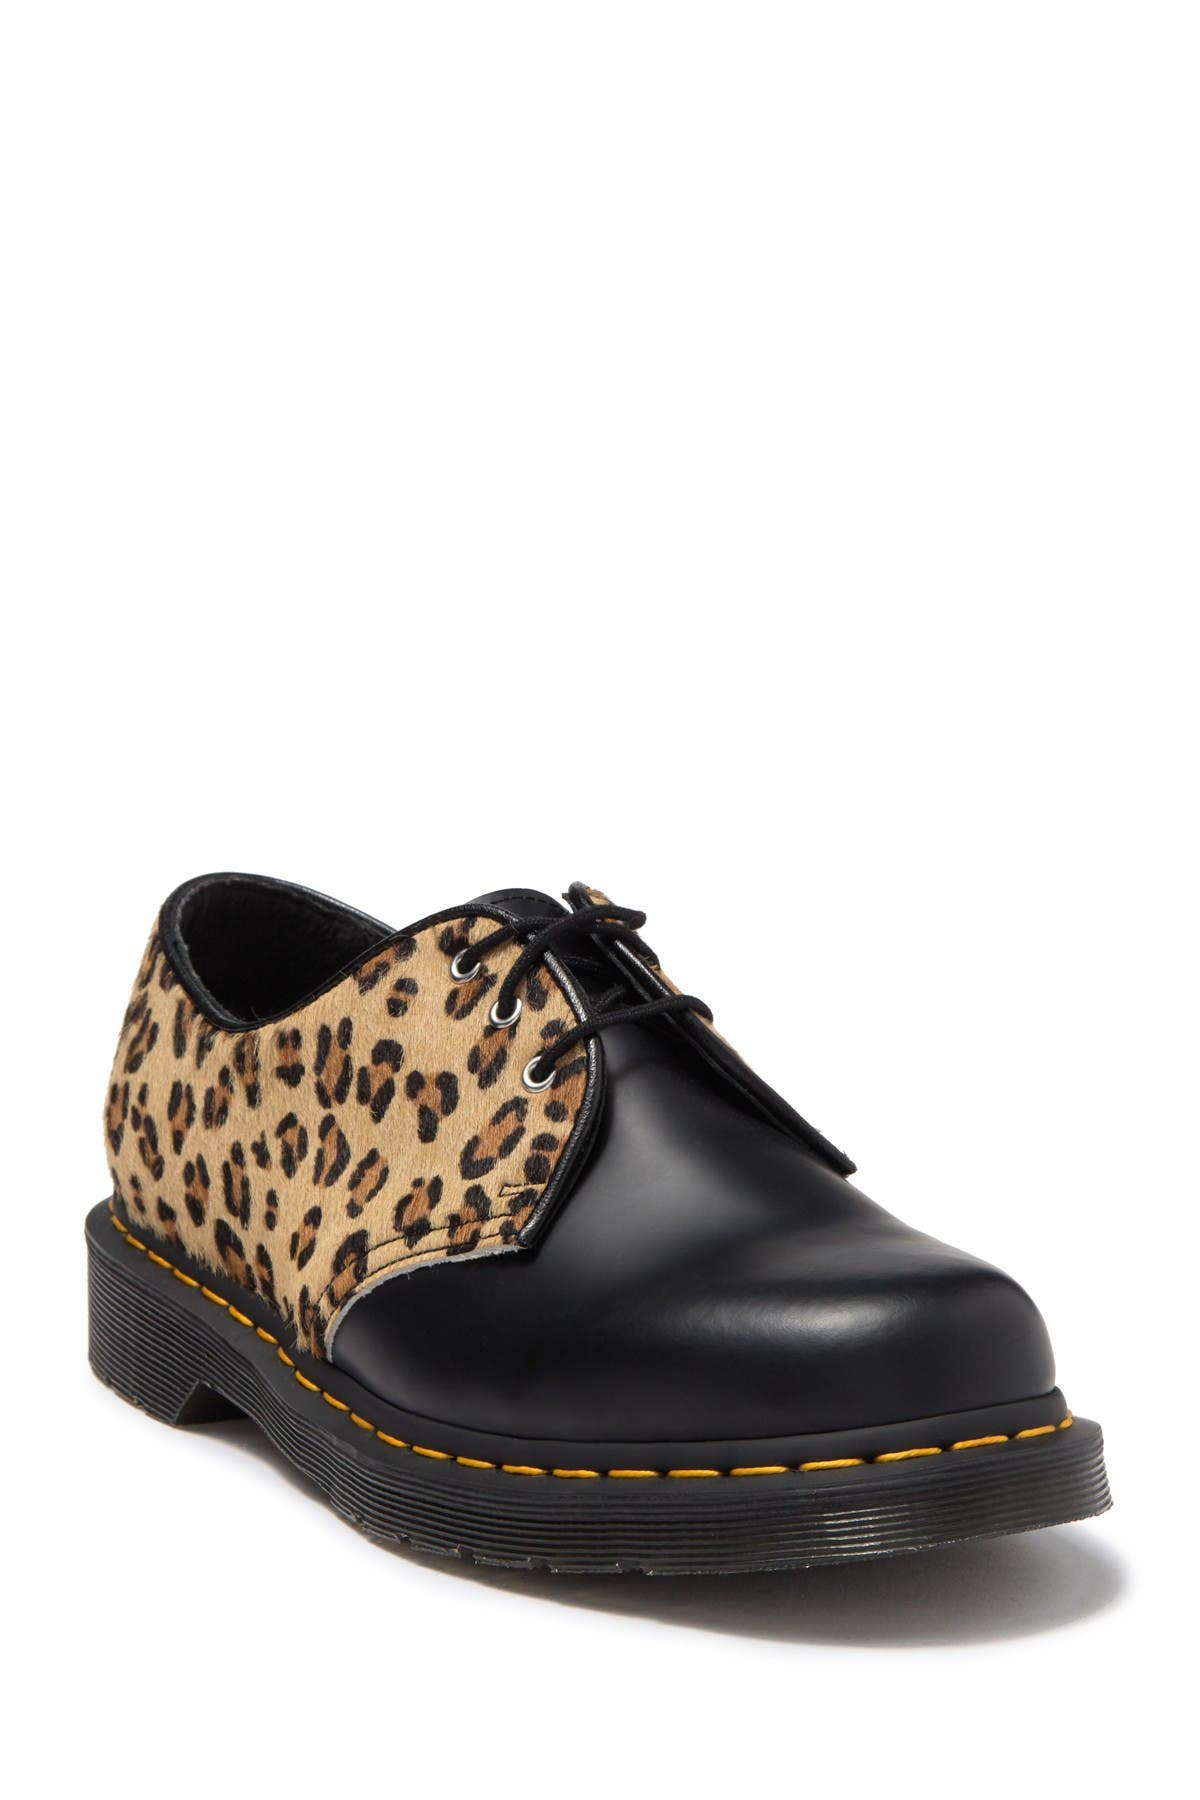 Image of Dr. Martens 1461 Genuine Hair Lace-Up Shoe